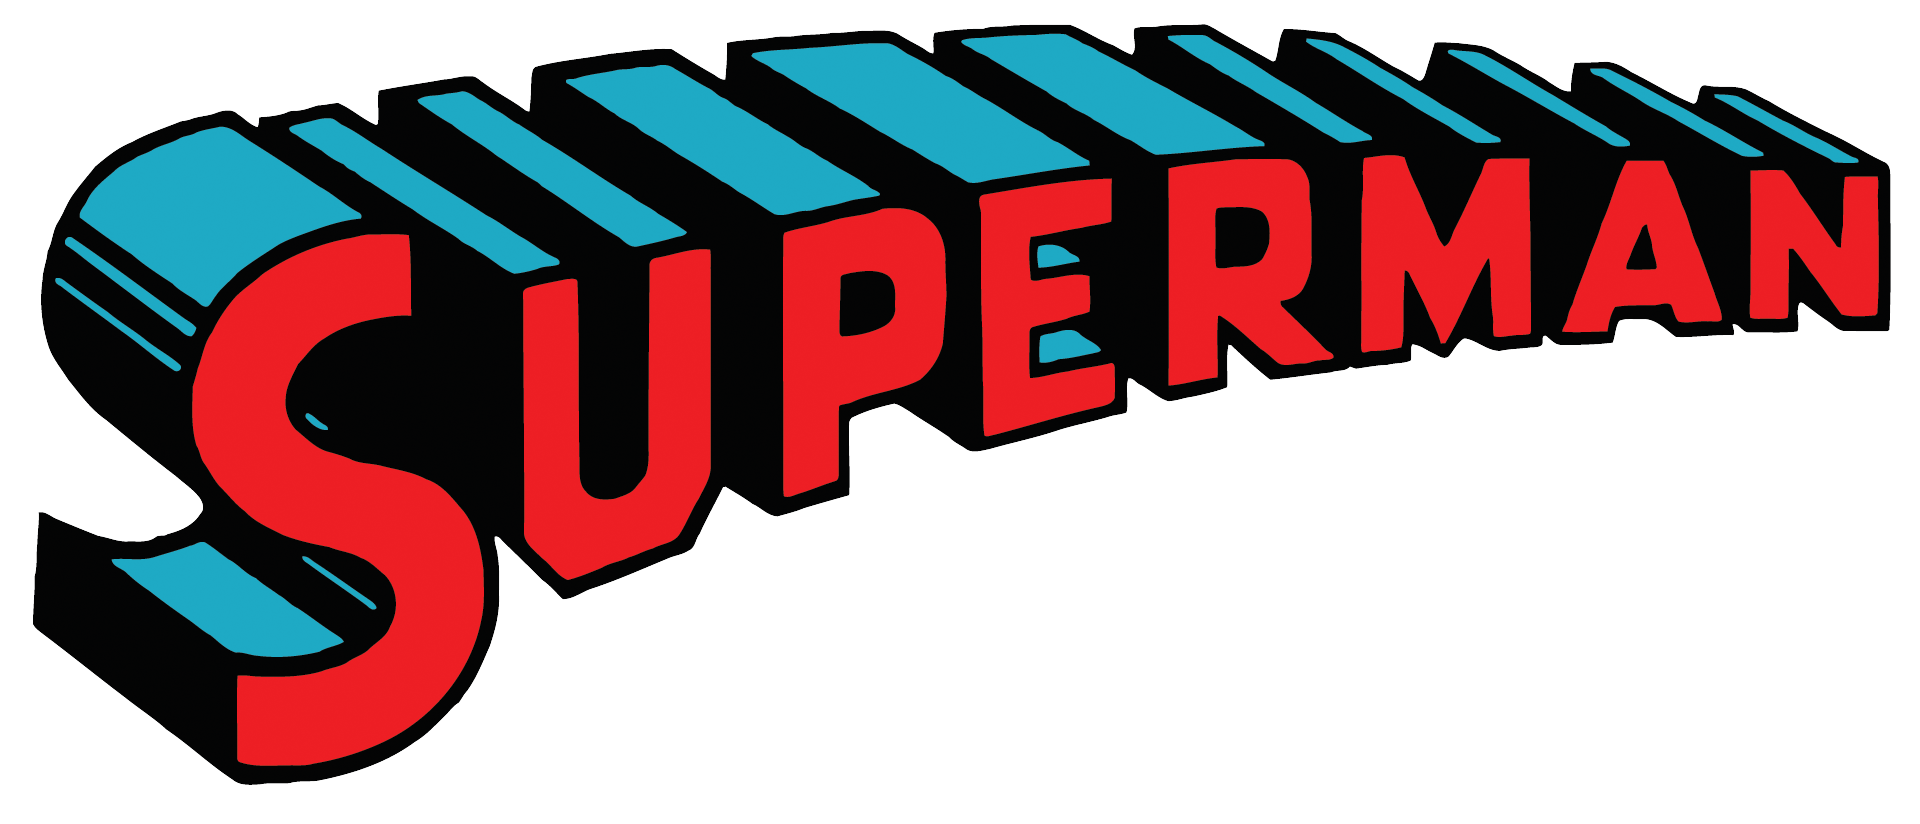 image a superman logo png crossover wiki fandom powered by wikia rh fictionalcrossover wikia com superman logo png format superman logo png hd